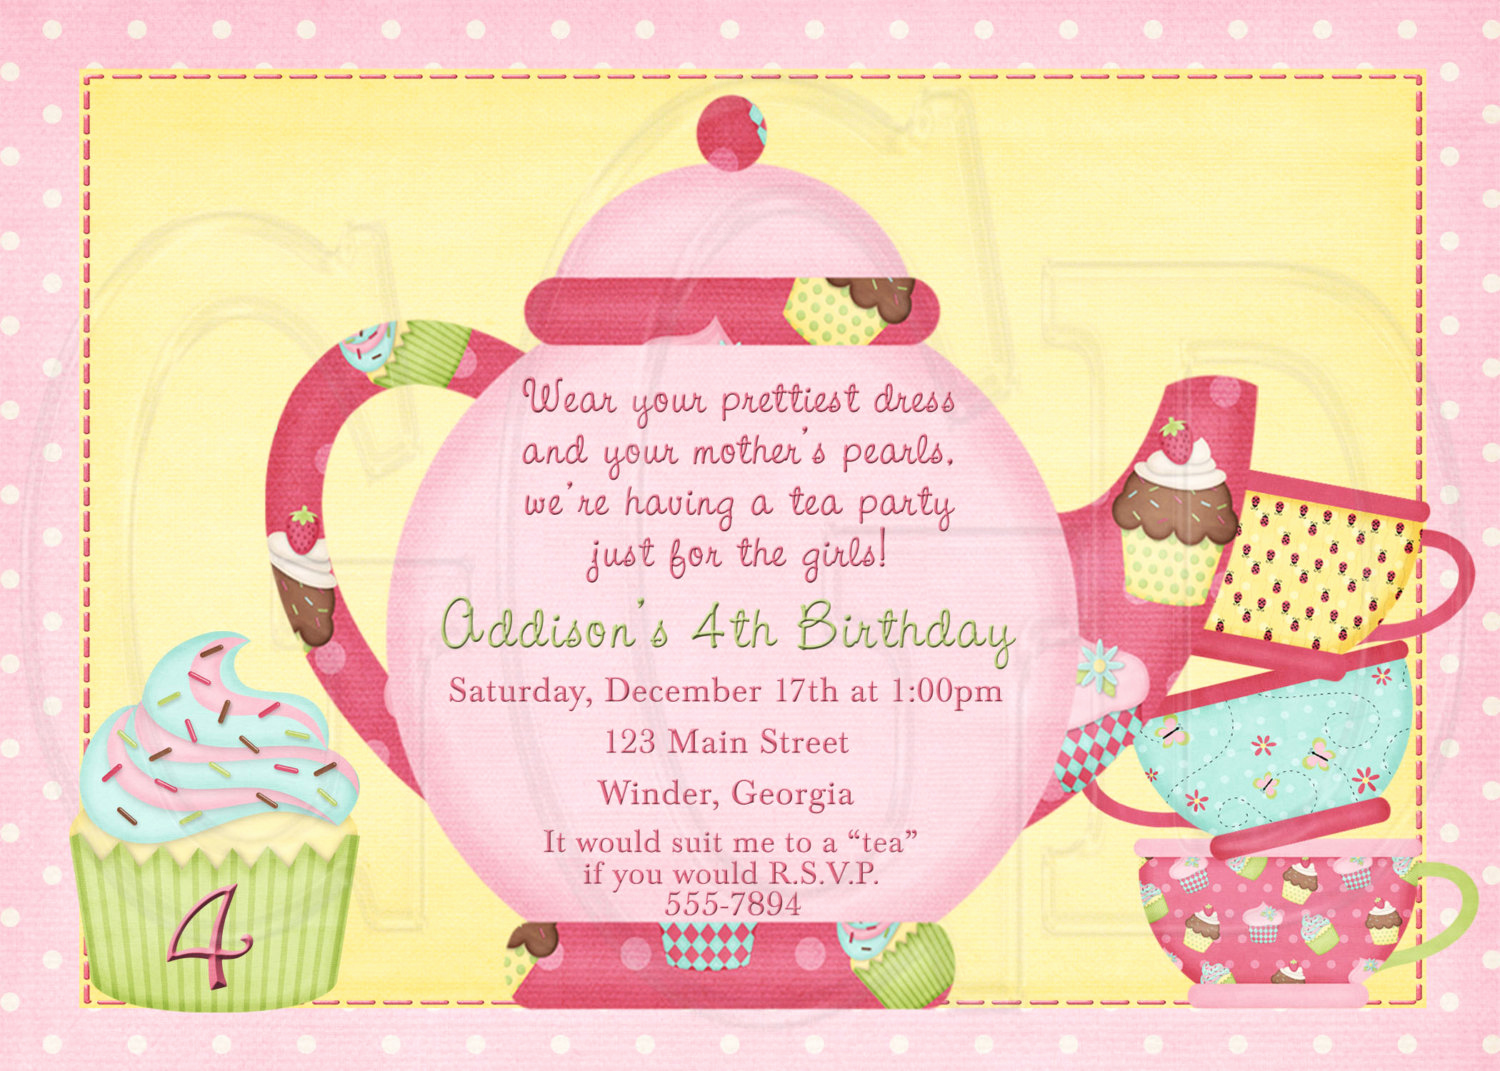 Tea Party Invitation Templates Inspirational Tea Party Invitation Birthday Dress Up Party Digital File